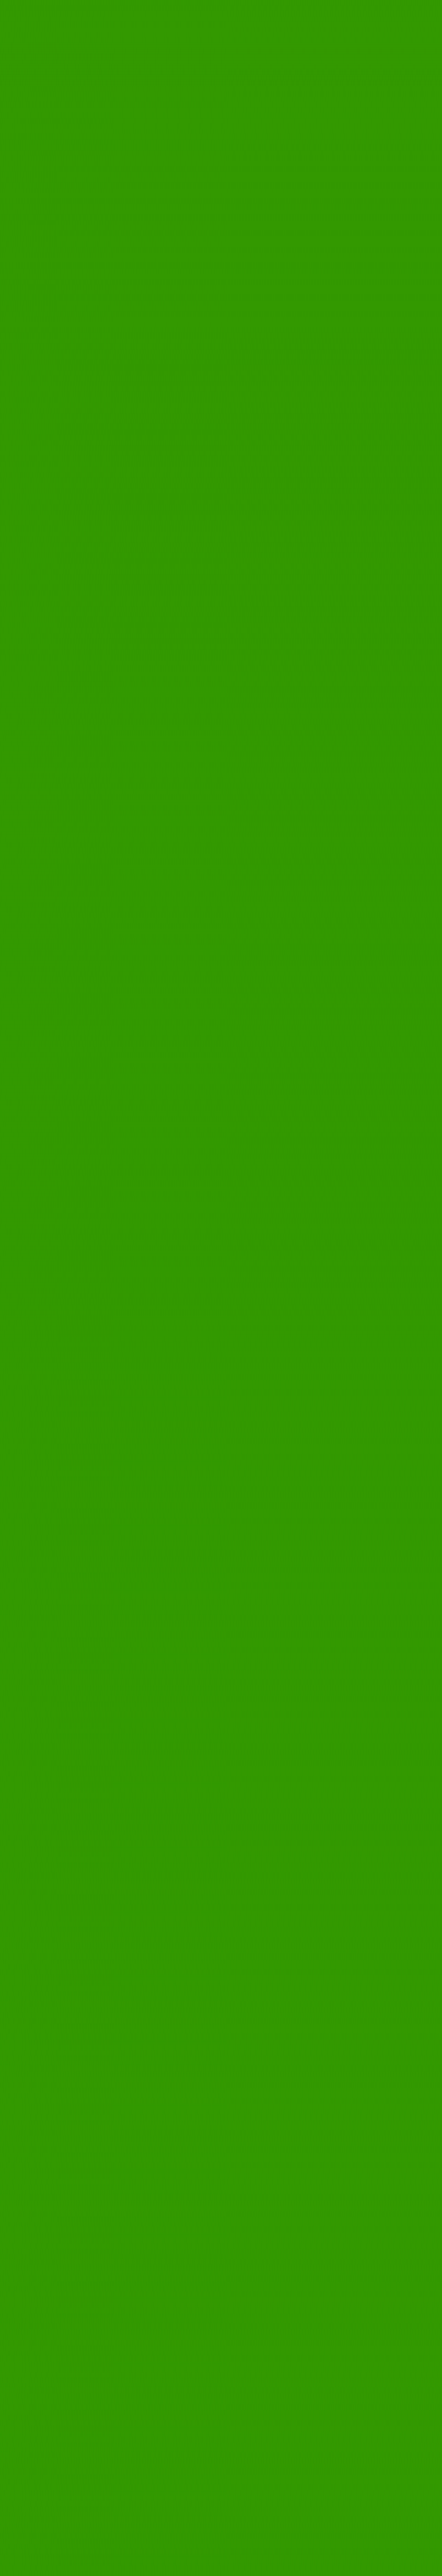 GREEN_SQUARE_2103.png